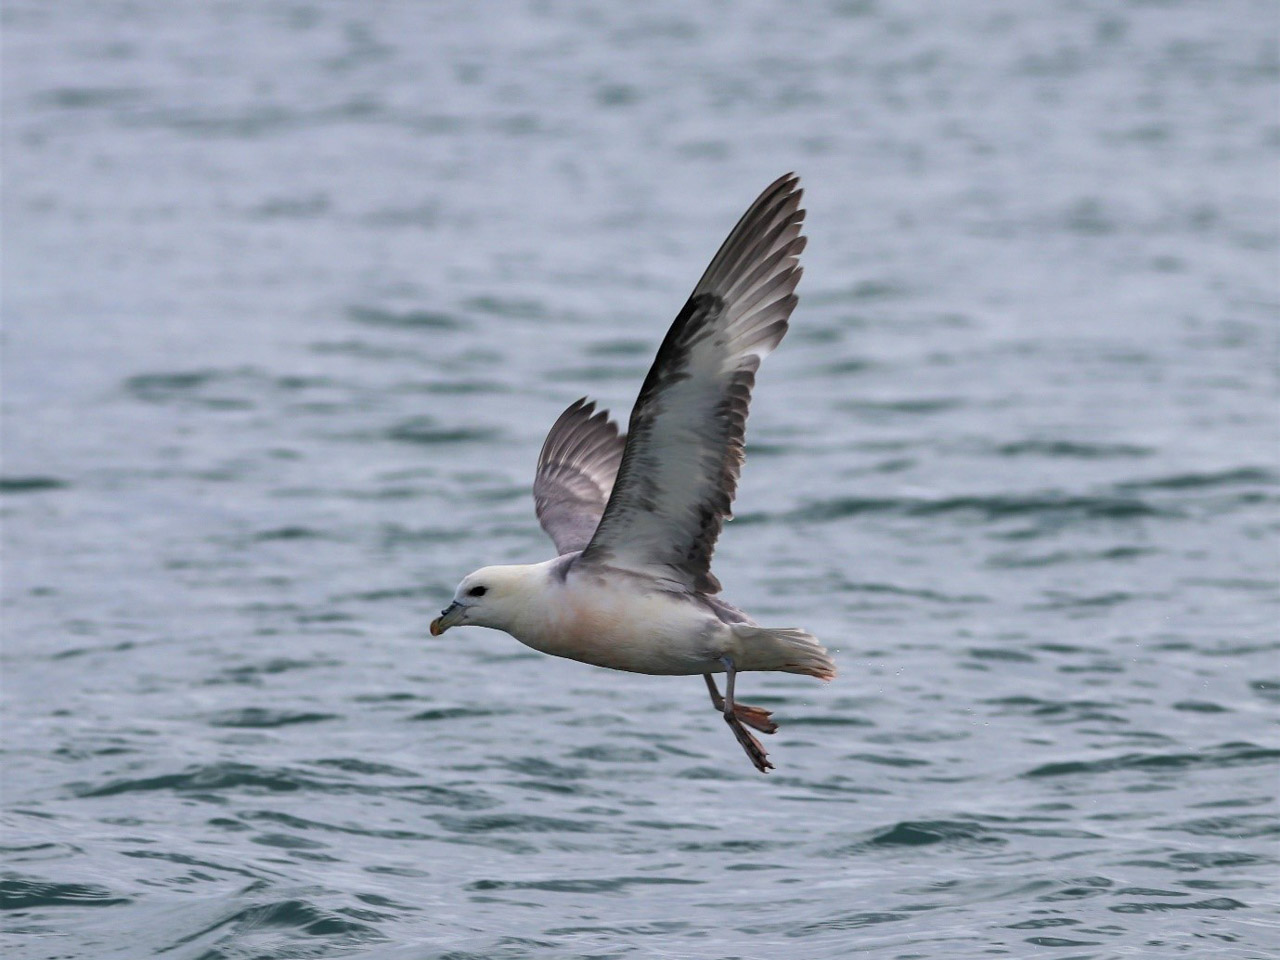 A fulmar takes off from the sea